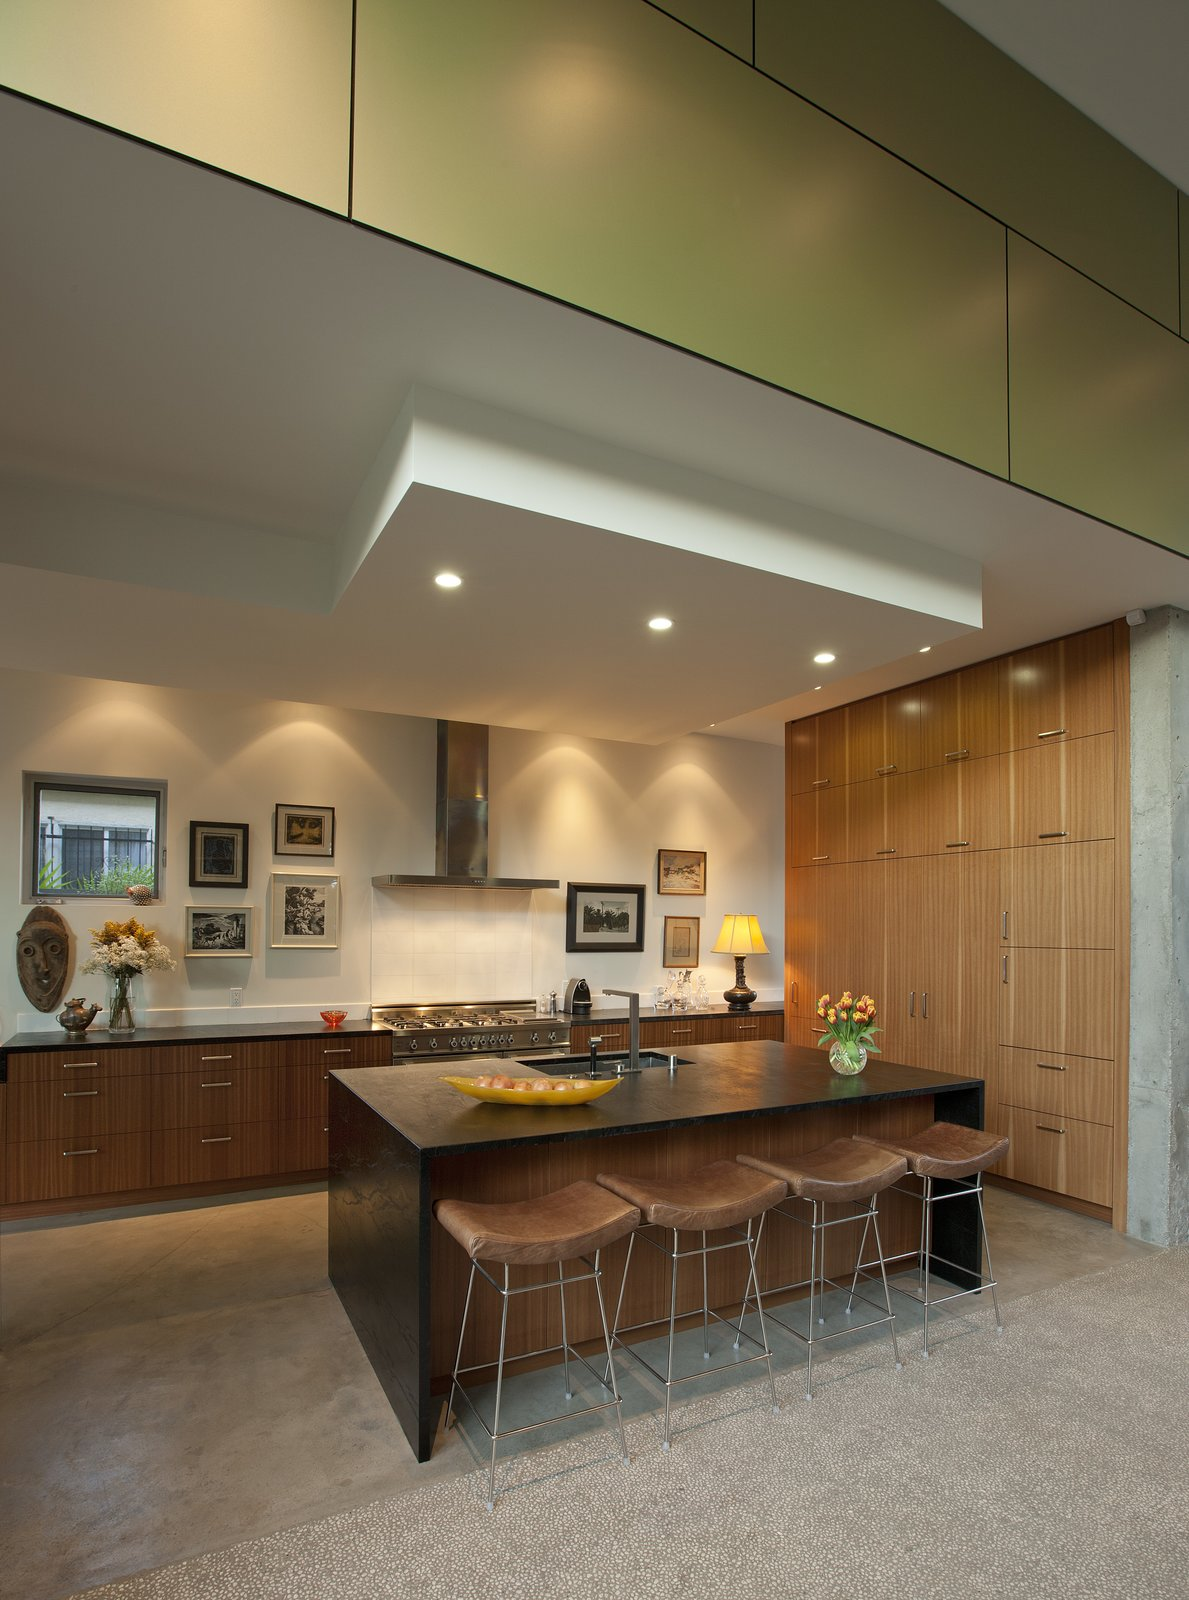 The Mid-Century style kitchen is recessed, framed in the same green Trespa panels on the exterior of the home, further incorporating an indoor-outdoor setup that is popular in Venice Beach.